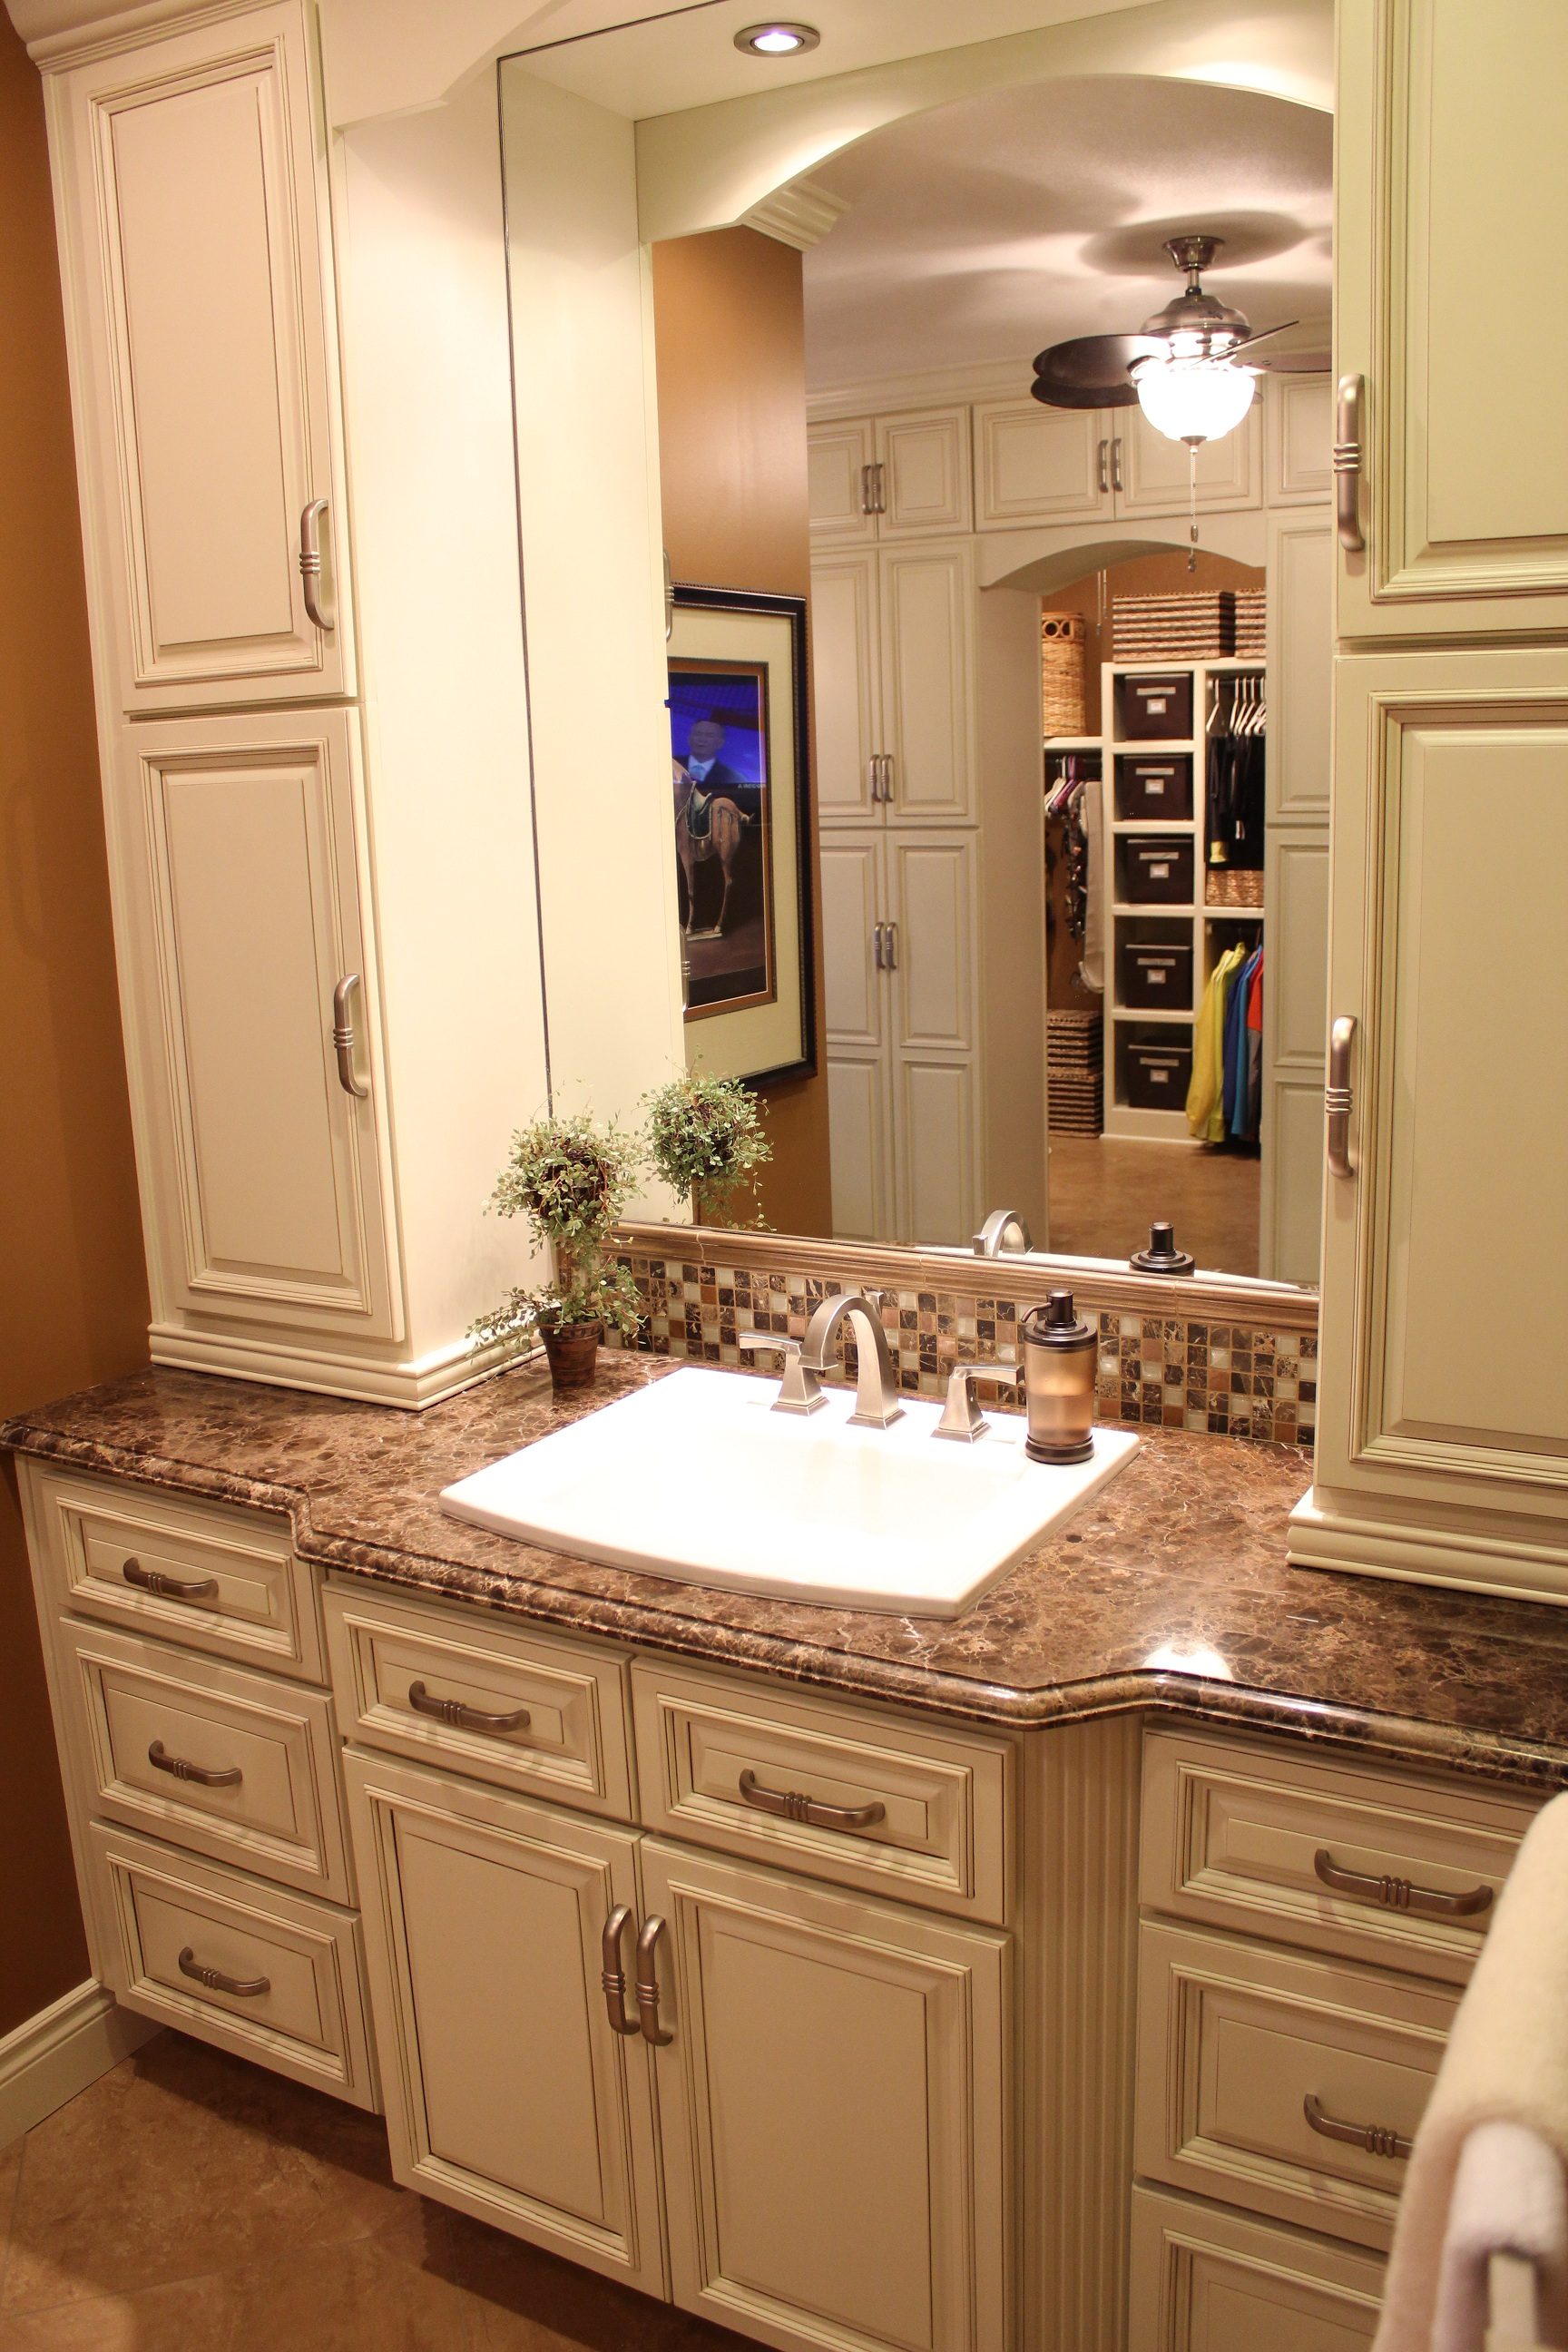 Lcl raised panel door premium cabinets - Bathroom cabinets sinks and vanities ...